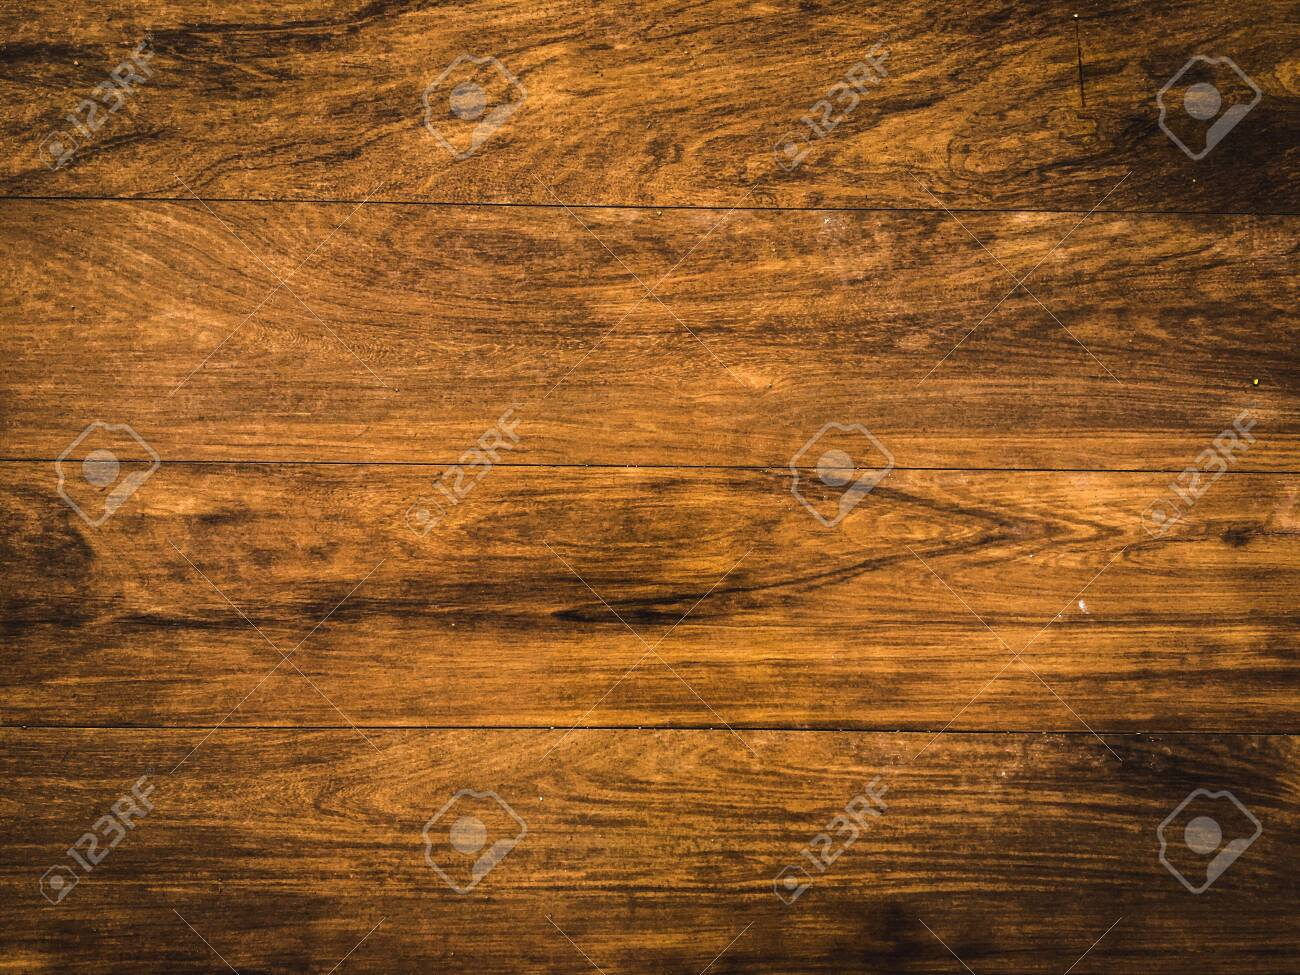 Abstract wood texture for work and design - 140311910